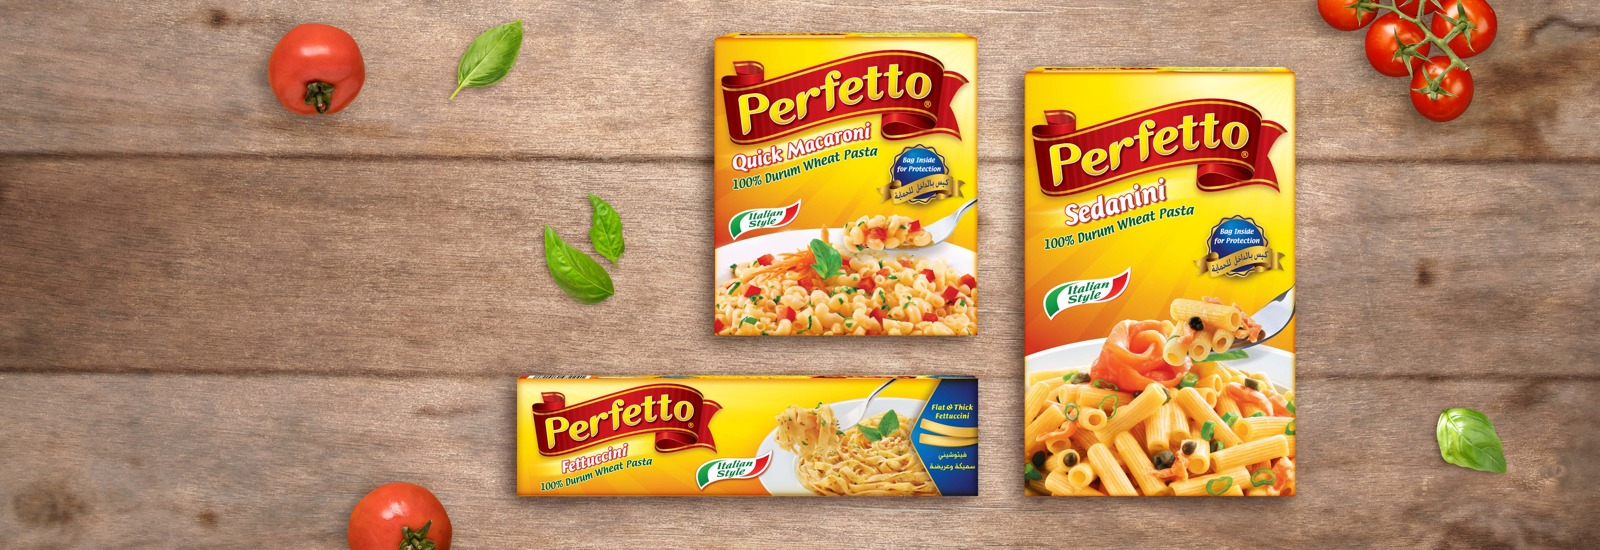 Perfetto Pasta Products